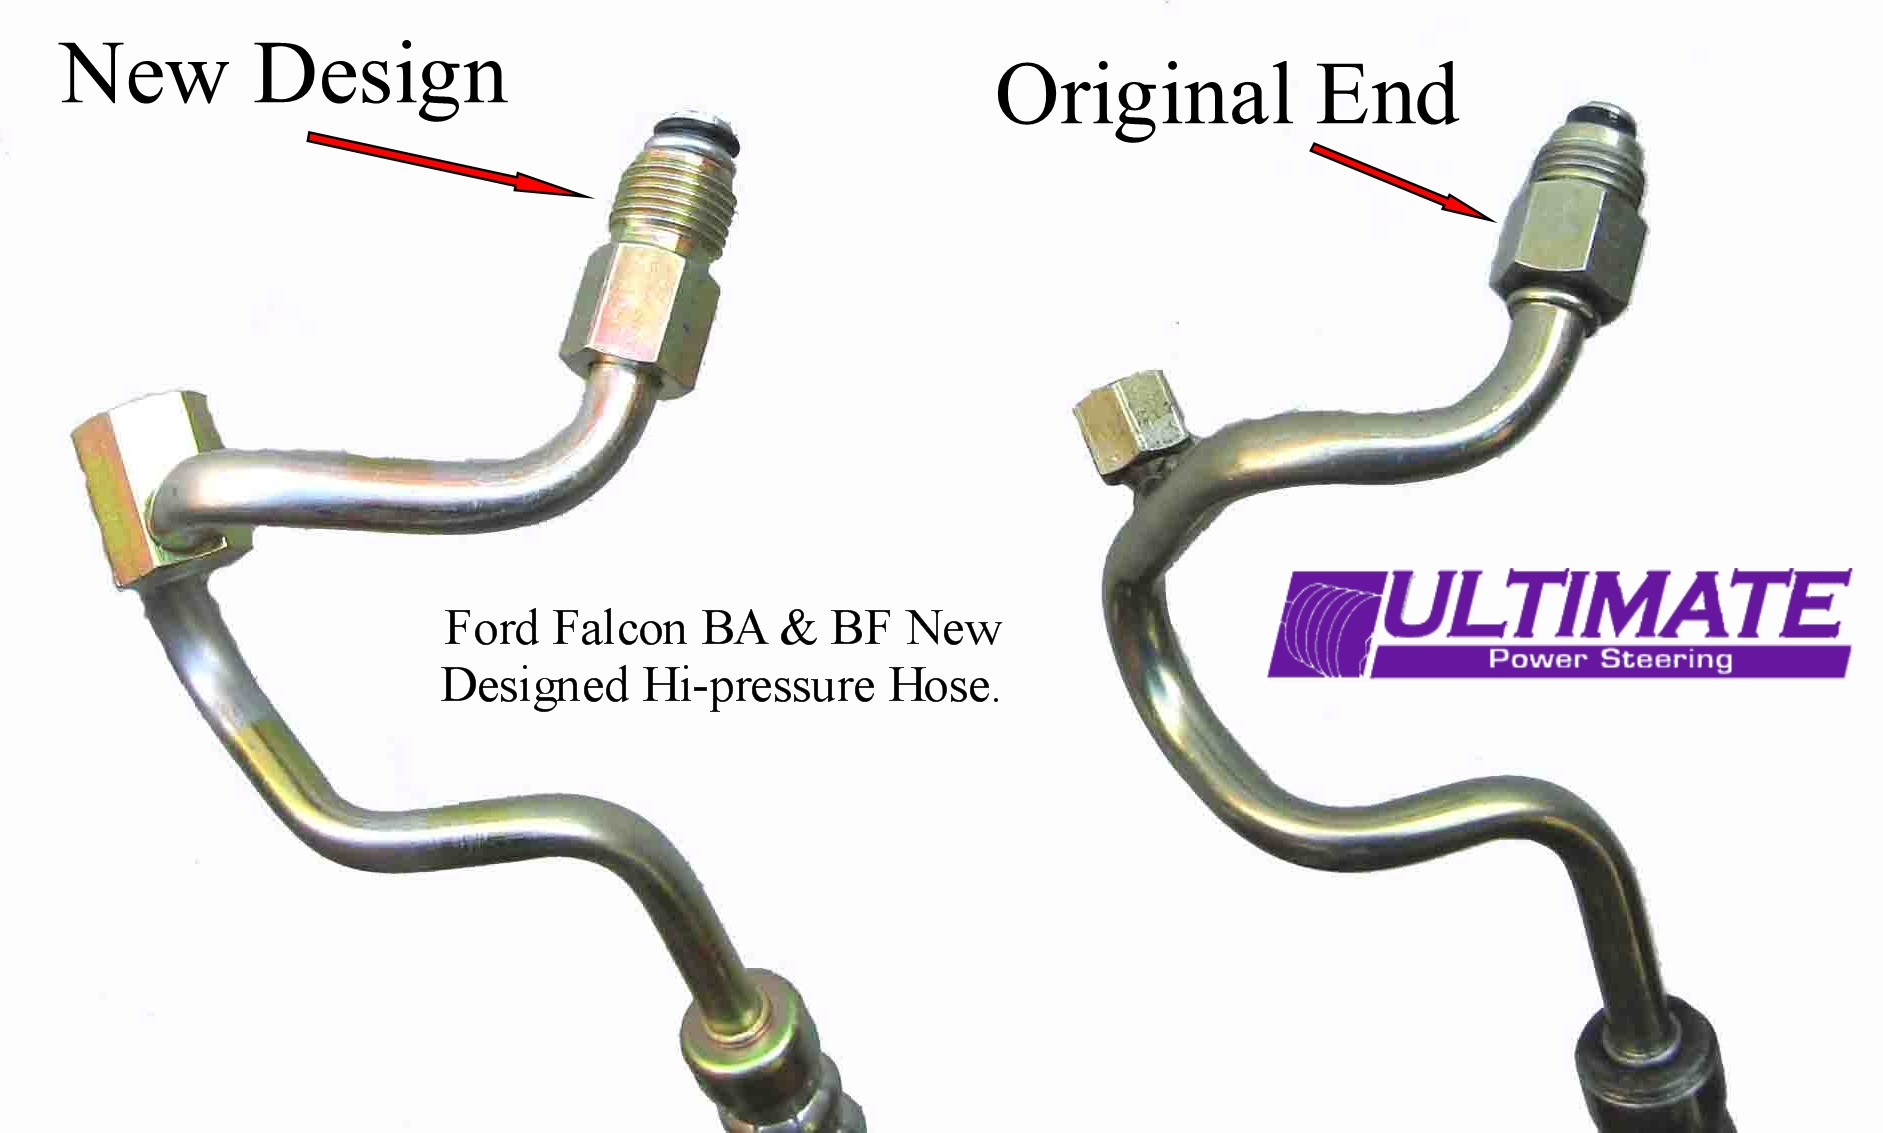 ford-ba-falcon-power-steering-high-pressure-hose-orginal-hose-new-after-market.jpg